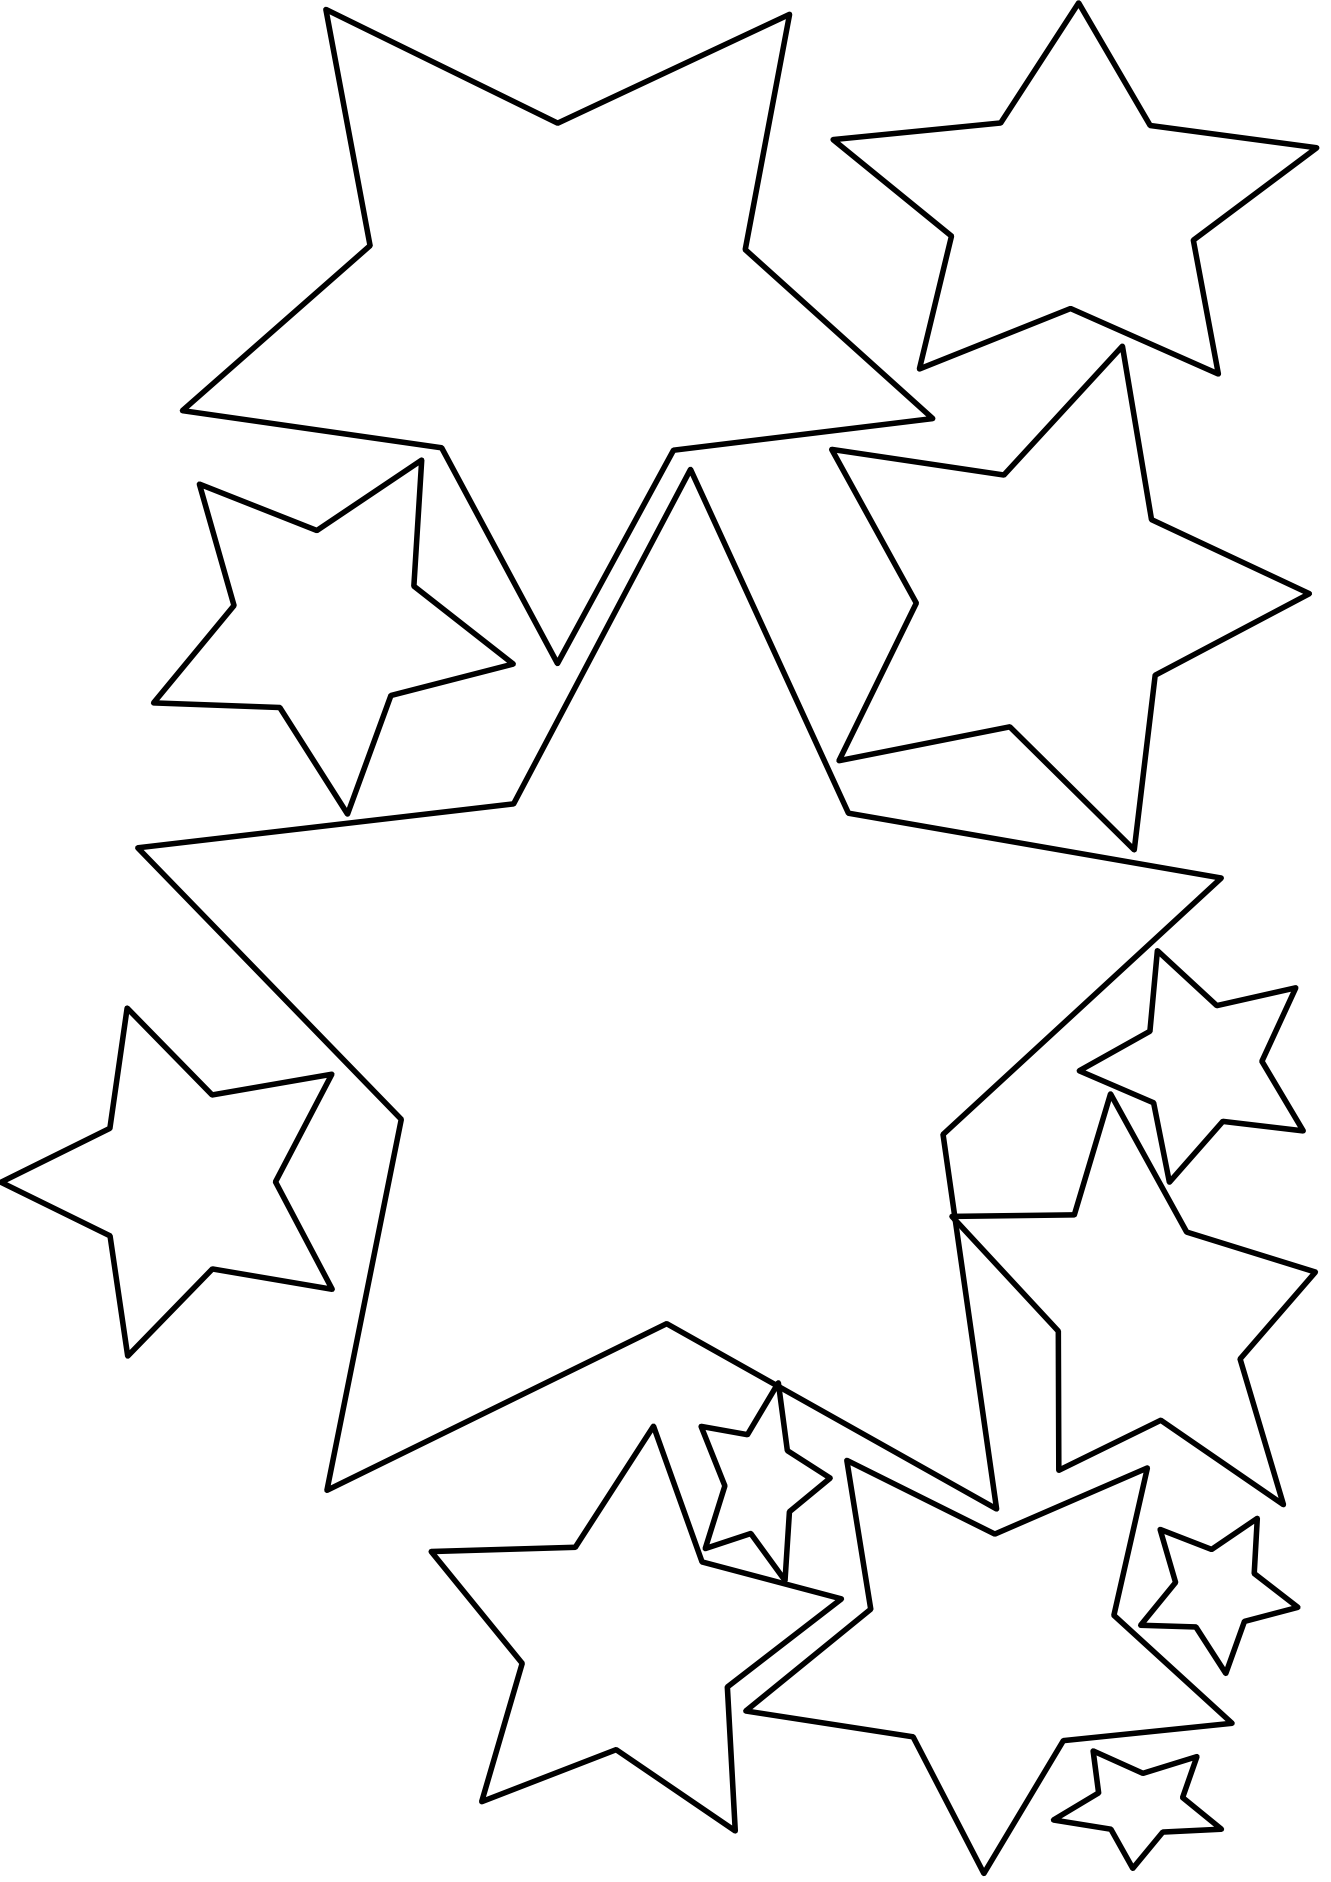 Pennies clipart coloring page. Great source for stars